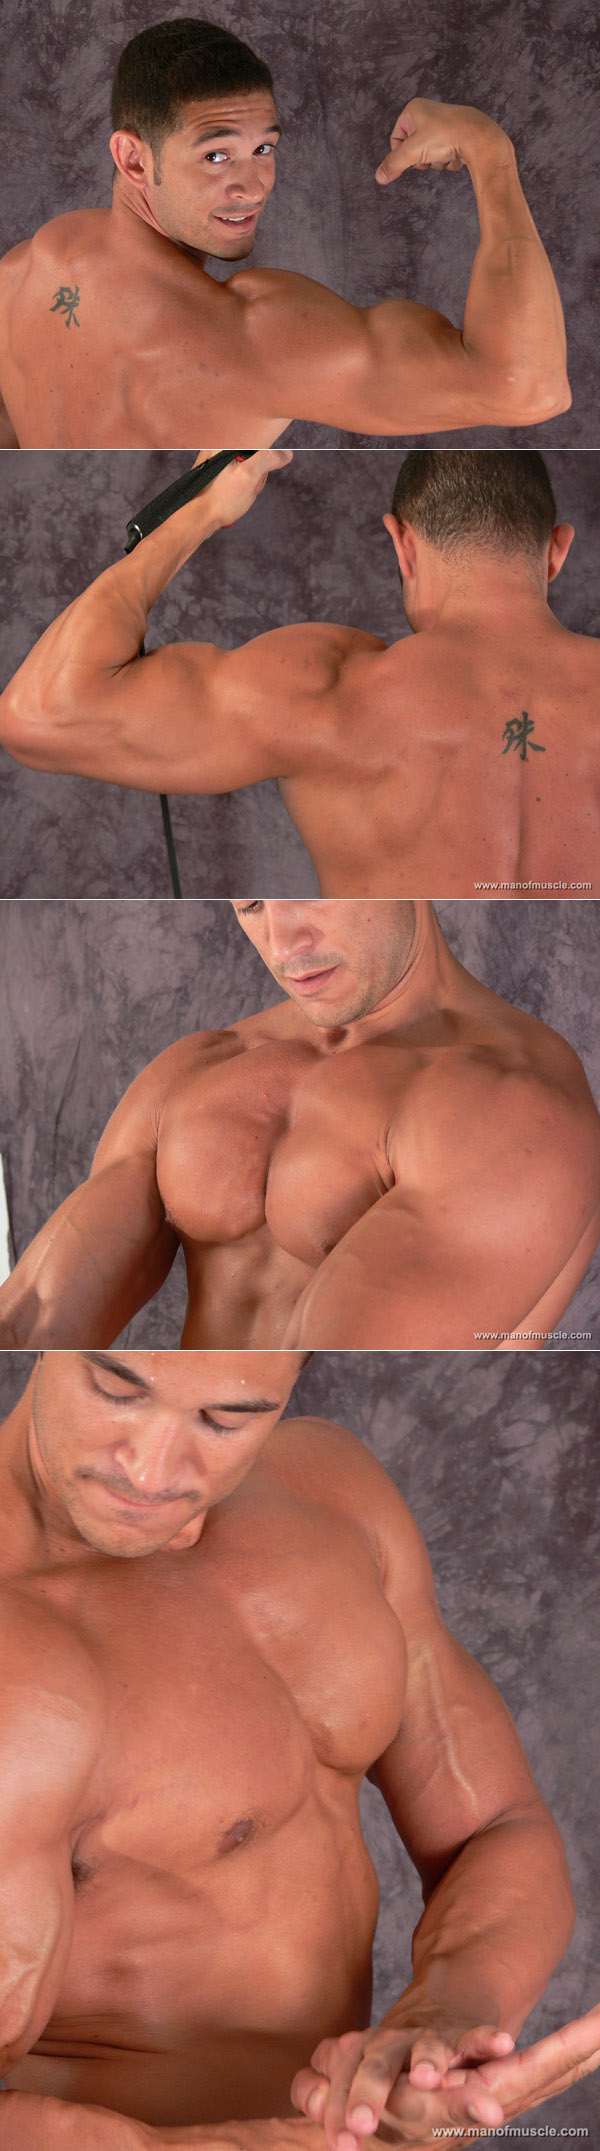 Amateur Latin bodybuilder with great arms